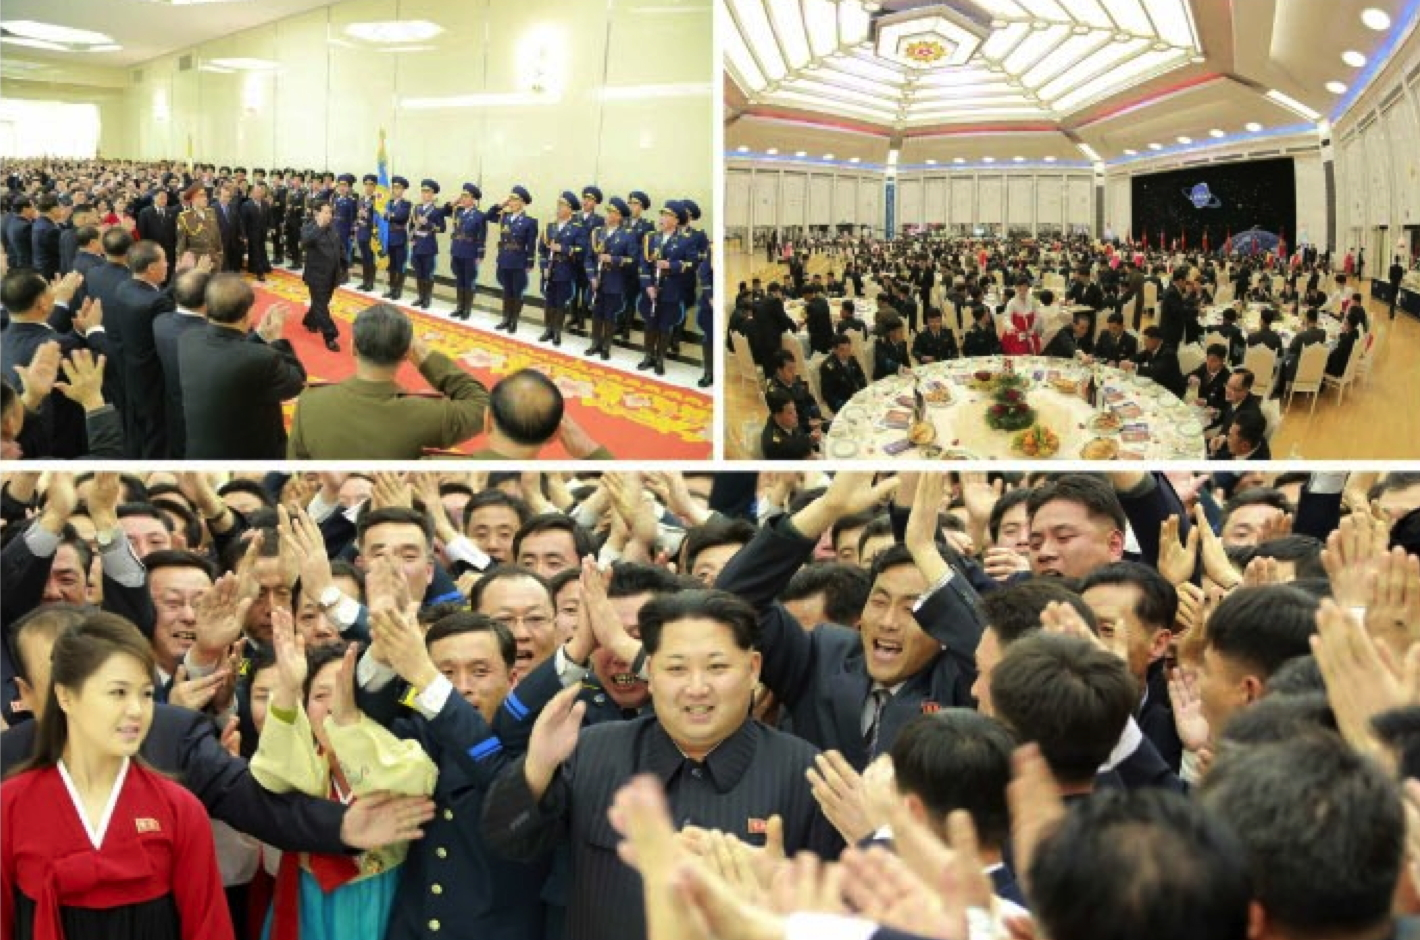 Kim Jong Un arrives and attends a banquet at the WPK Central Committee's Mokran (peony) House in central Pyongyang on February 14, 2016. The banquet was hosted for personnel who participated in the successful launch of the Kwangmyo'ngso'ng-4 on February 7, 2016 (Photos: KCNA/Rodong Sinmun).